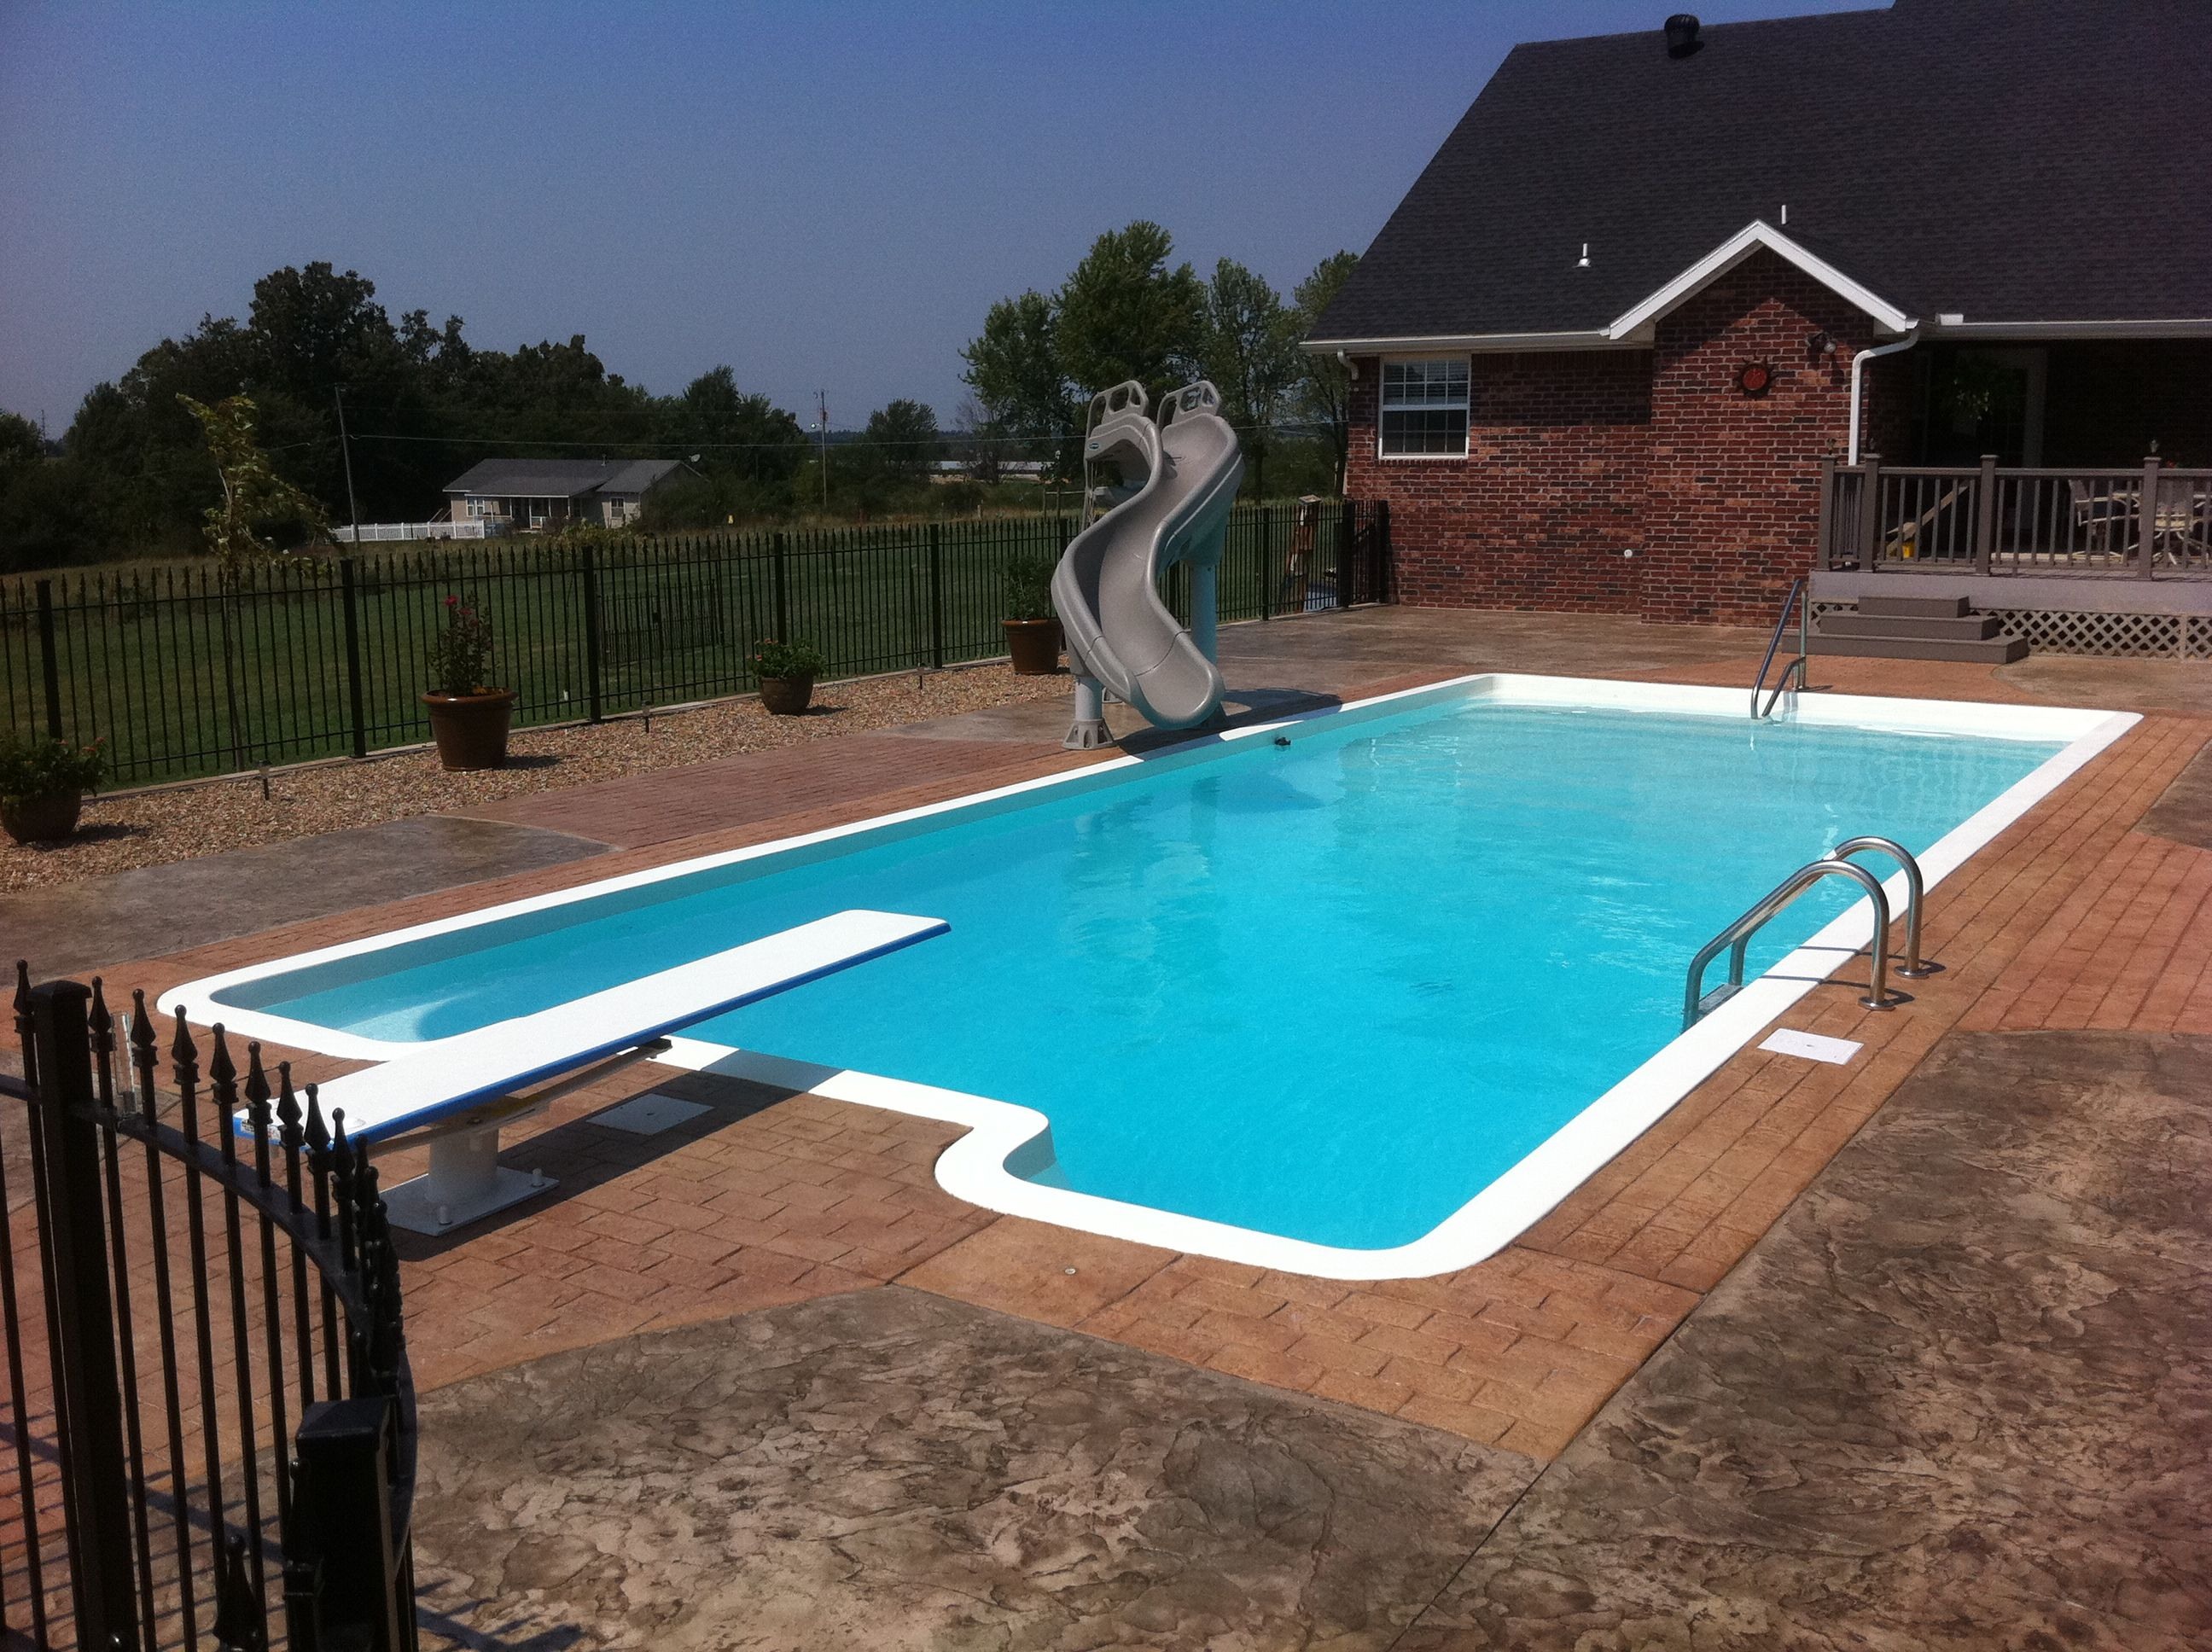 Large Fiberglass Pool With Slide And Diving Board Swimming Pools Backyard Rectangular Pool Backyard Pool